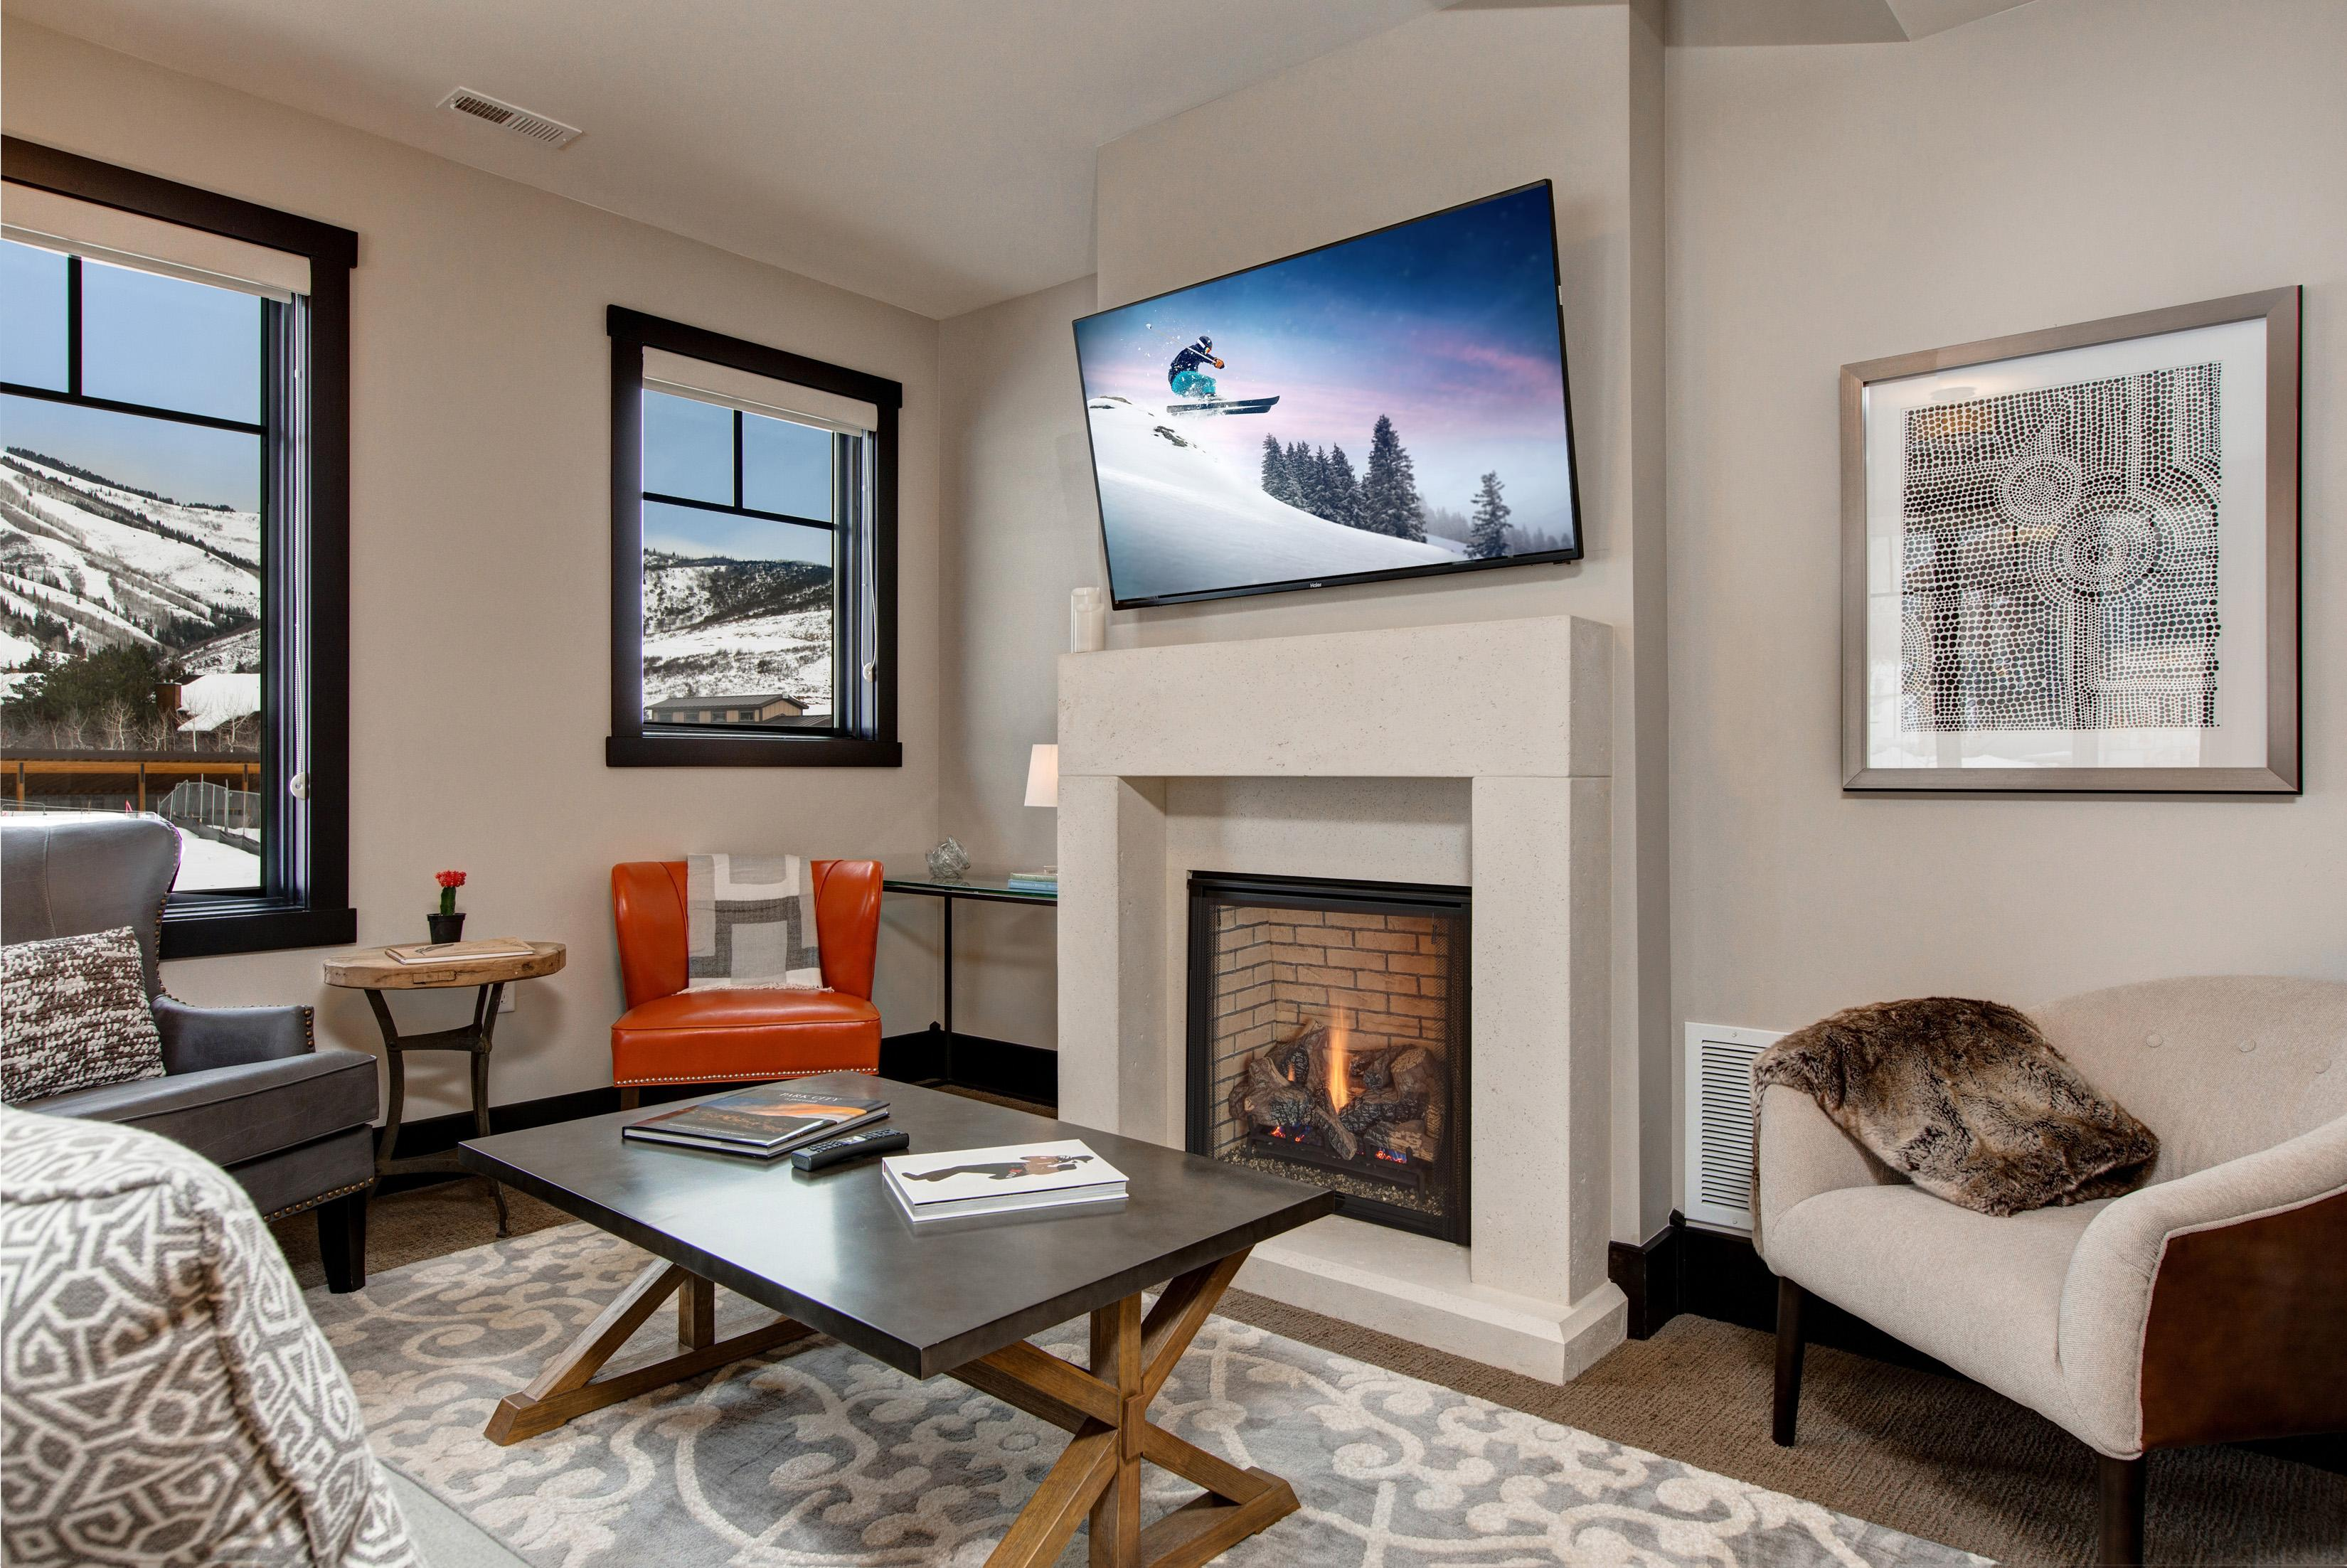 Property Image 1 - Blissful Mountain-chic Condo Within Minutes Walk to Lifts